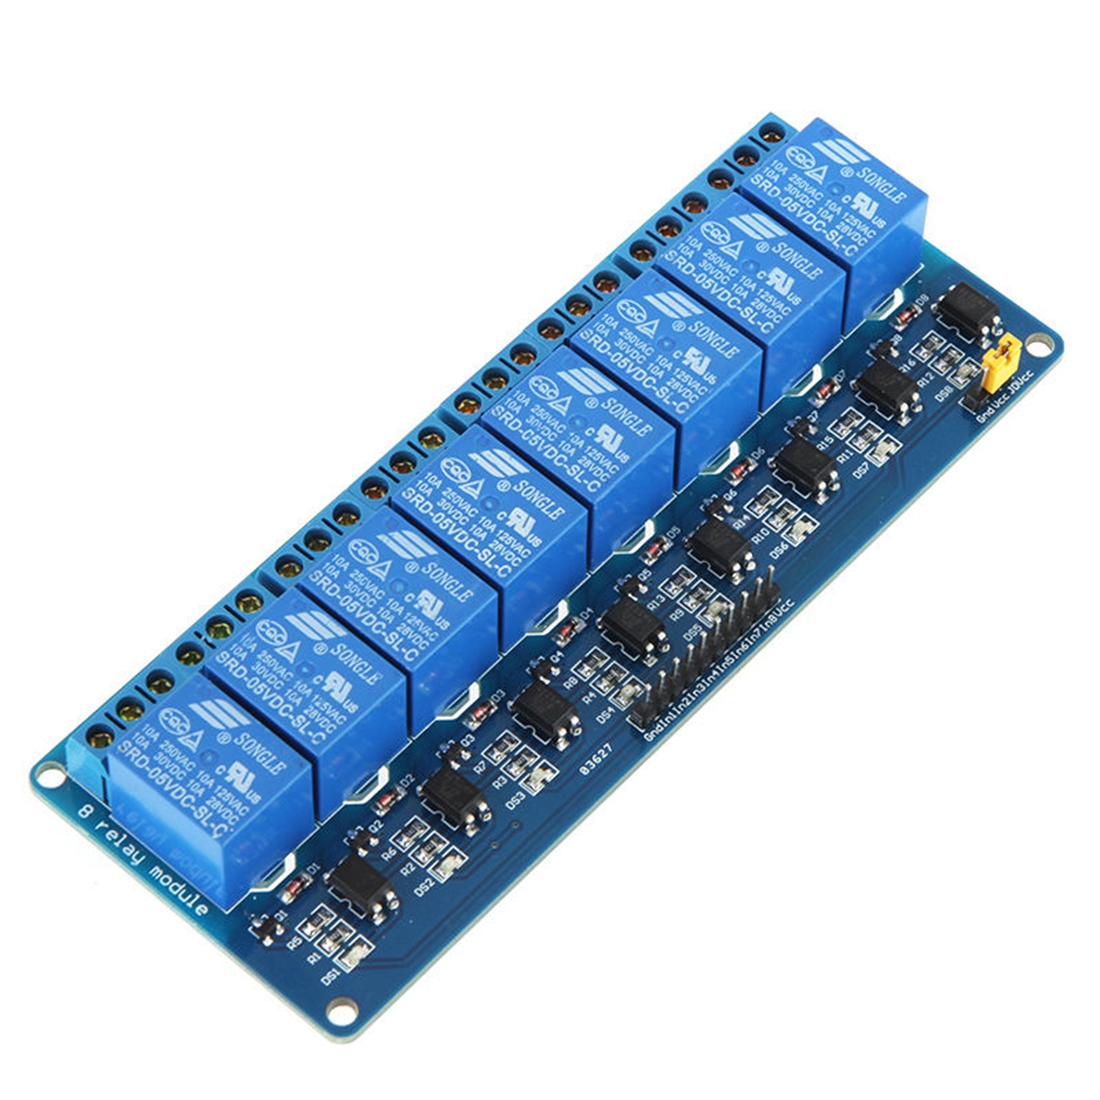 New 5V 8 Channel Relay Module Board For Arduino AVR PIC MCU DSP ARM 8 channel relay module board for arduino pic avr mcu dsp arm electronic best price 8 channel relay module 12v 5v